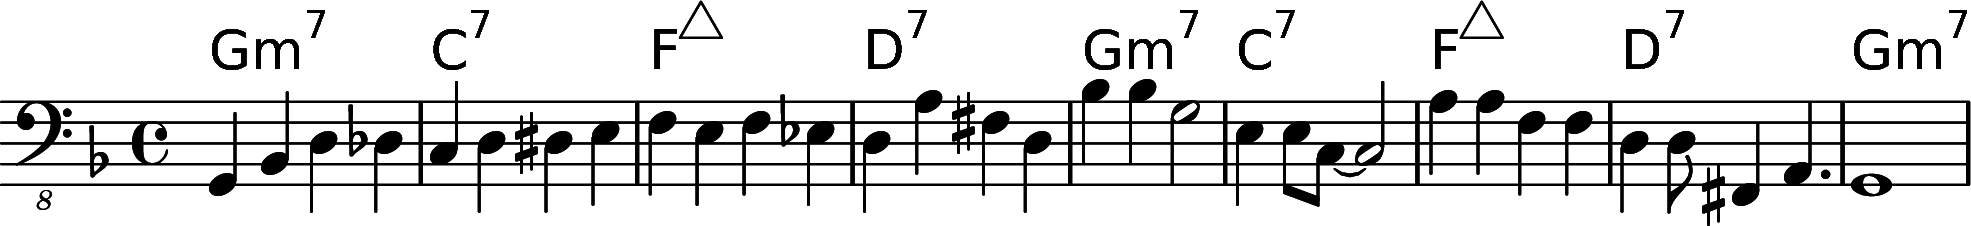 Walking bass line over 2-5-1-6 F major chord progression